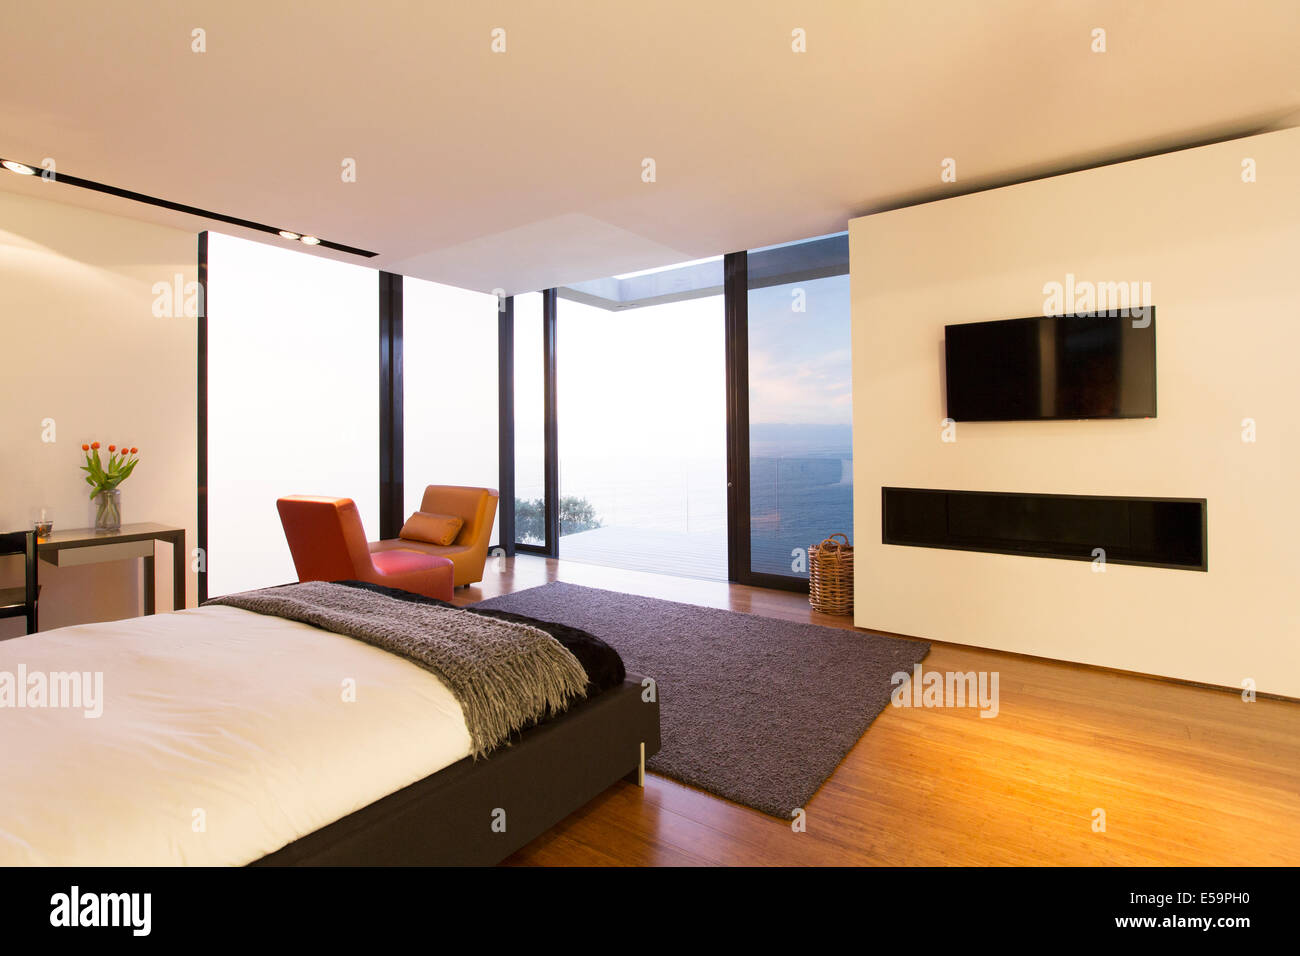 Bedroom and glass doors of modern house - Stock Image